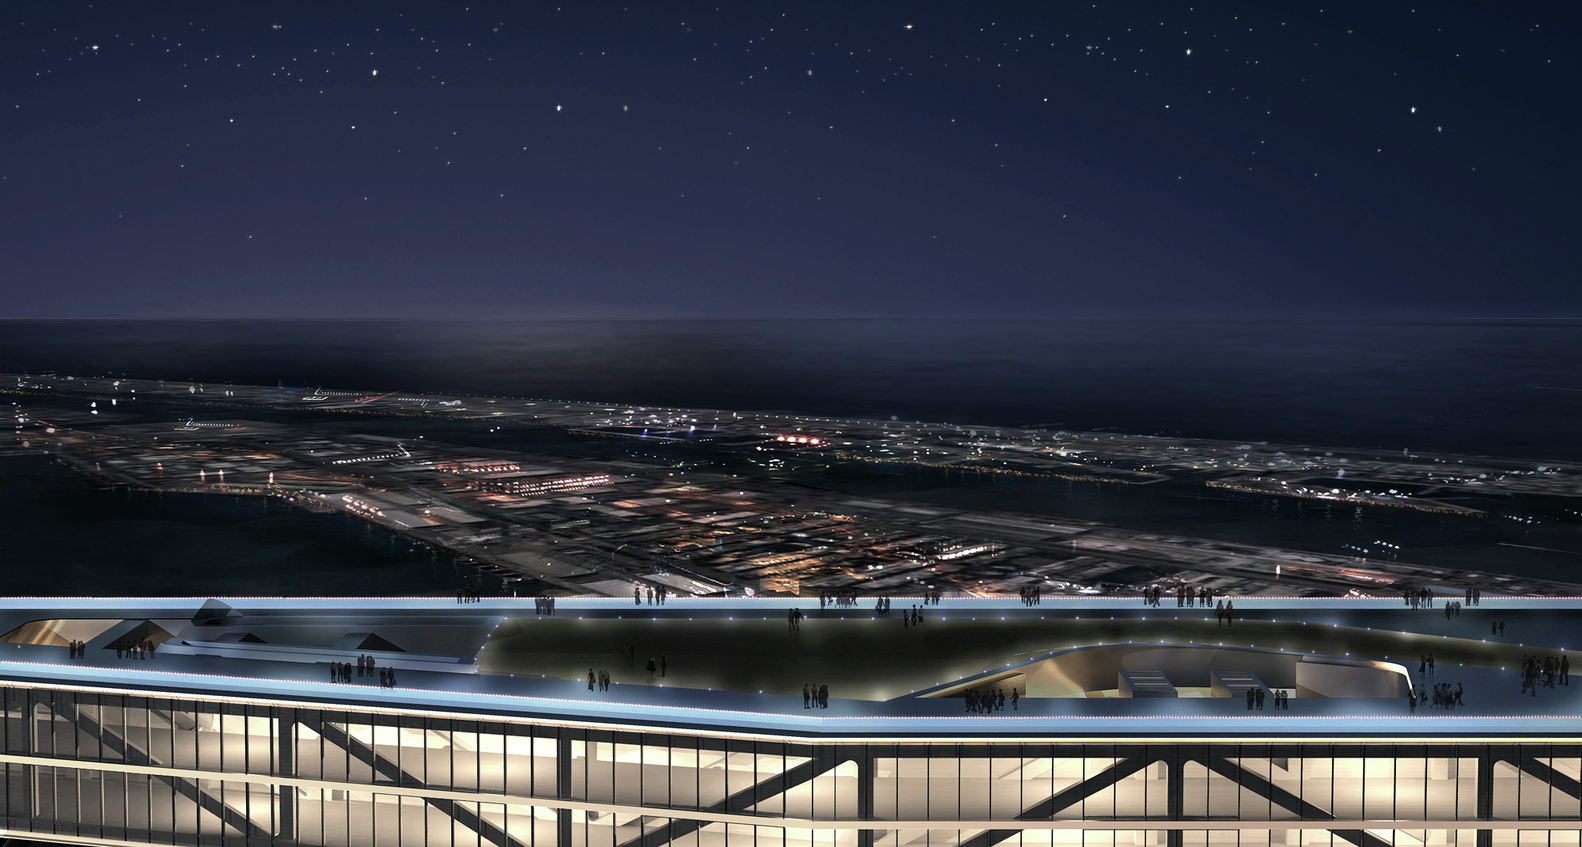 ad25_level40_roof-deck-night-view.jpg